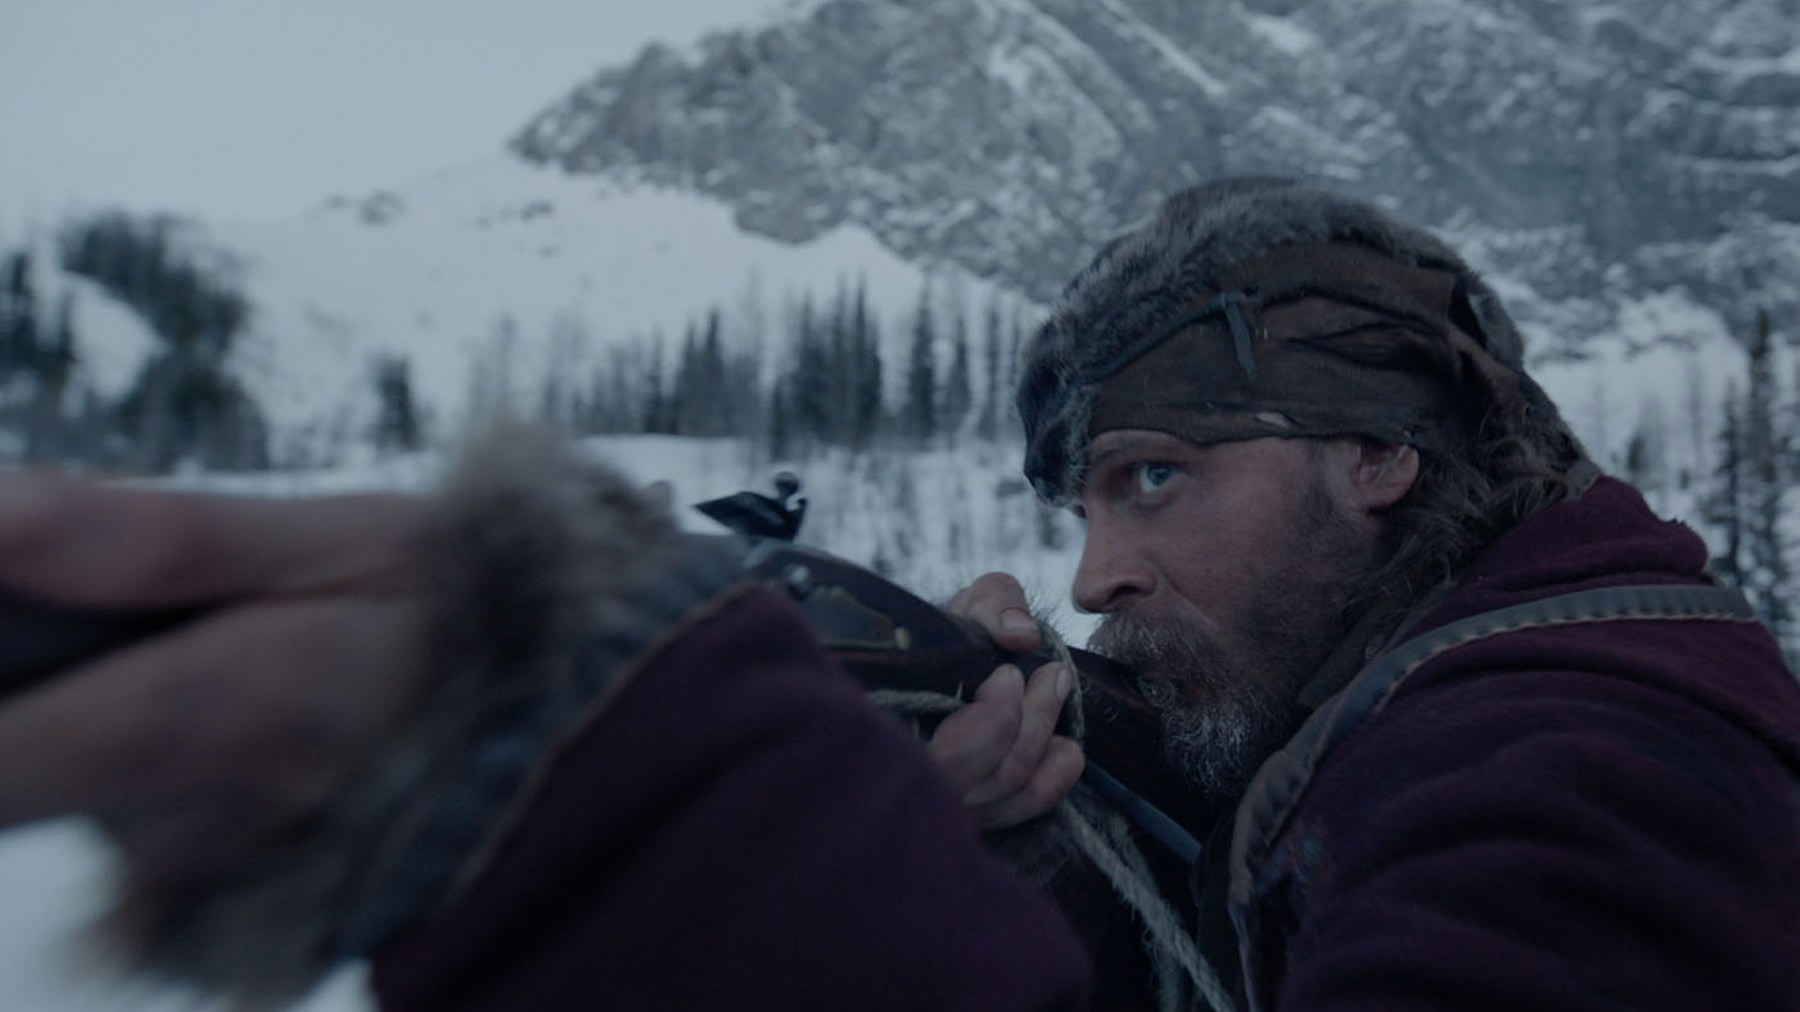 Tom Hardy stars as John Fitzgerald in 20th Century Fox's The Revenant (2015)